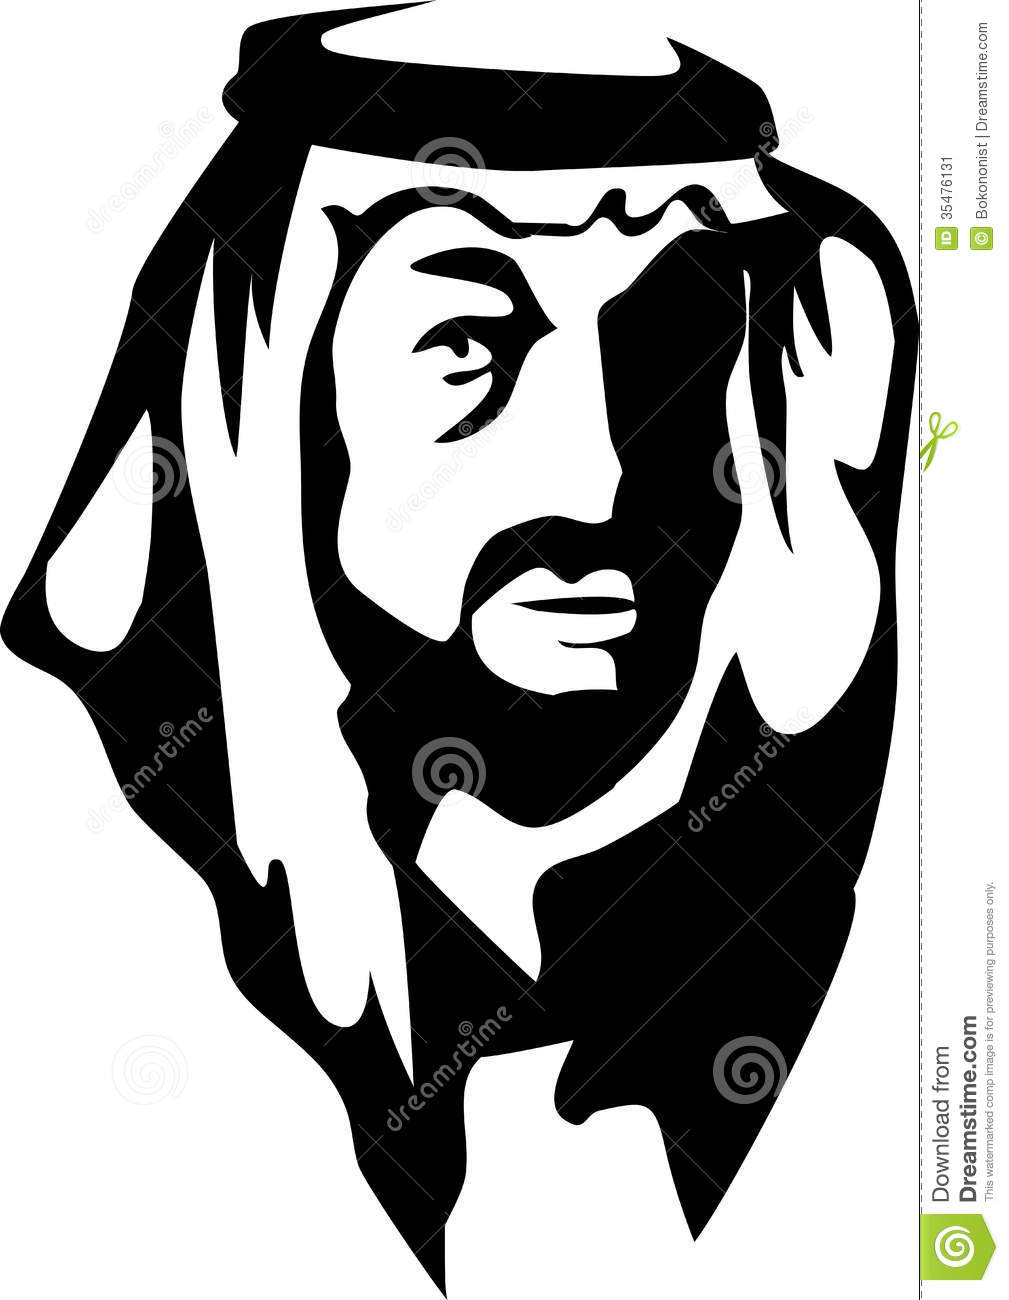 Face for arabic man clipart banner royalty free download Arab Stock Image - Image: 35476131 banner royalty free download